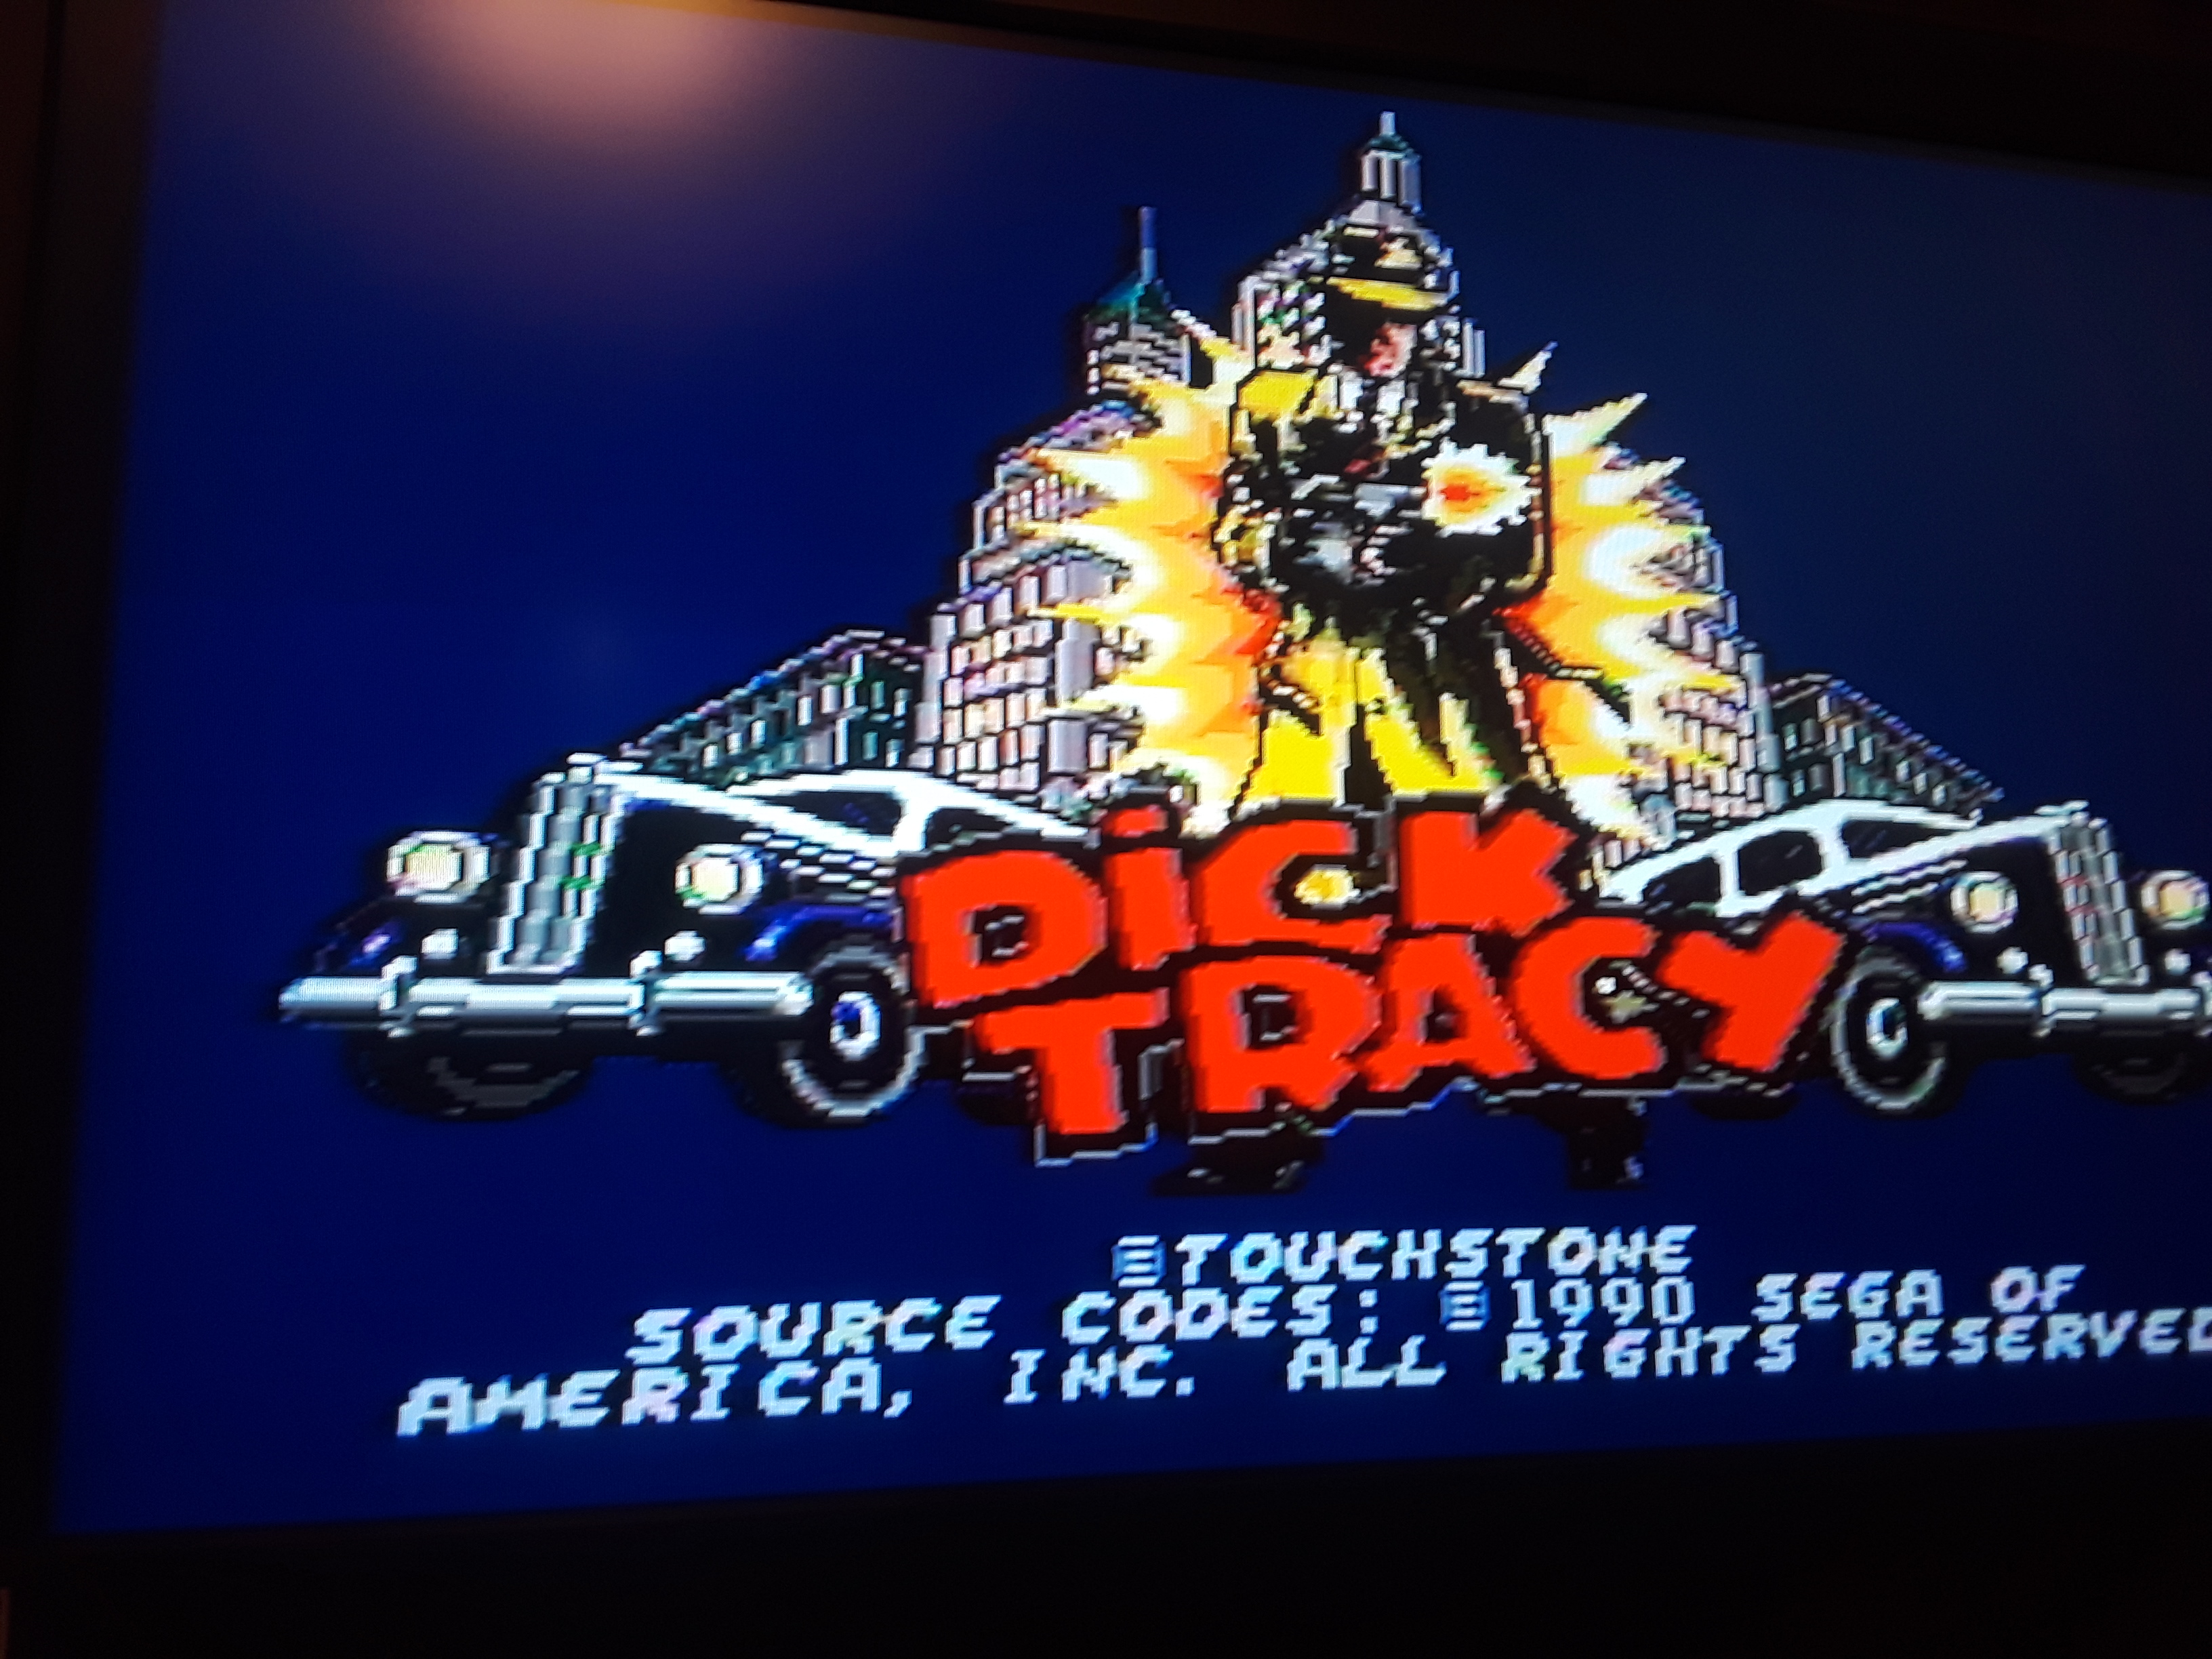 Dick Tracy [Hard] 22,400 points